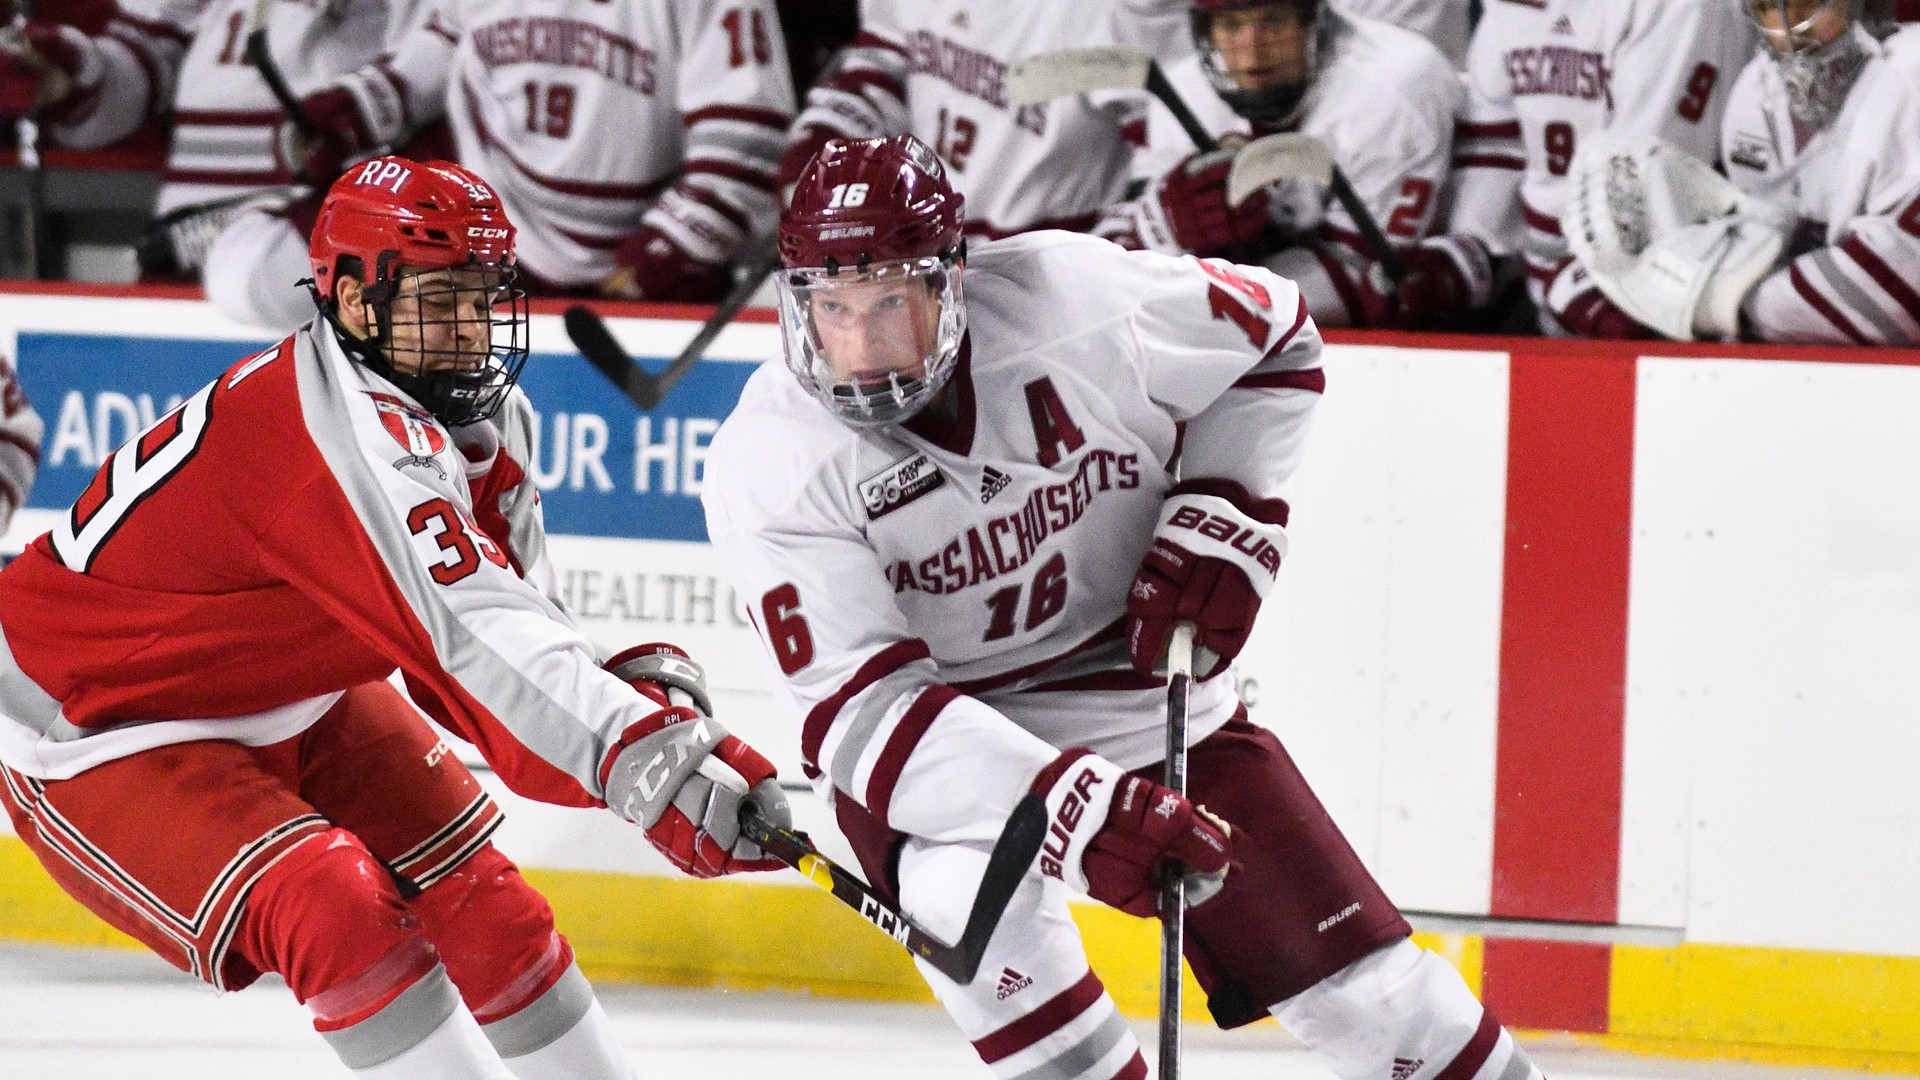 Makar Repeats As Hockey East Player Of The Week University Of